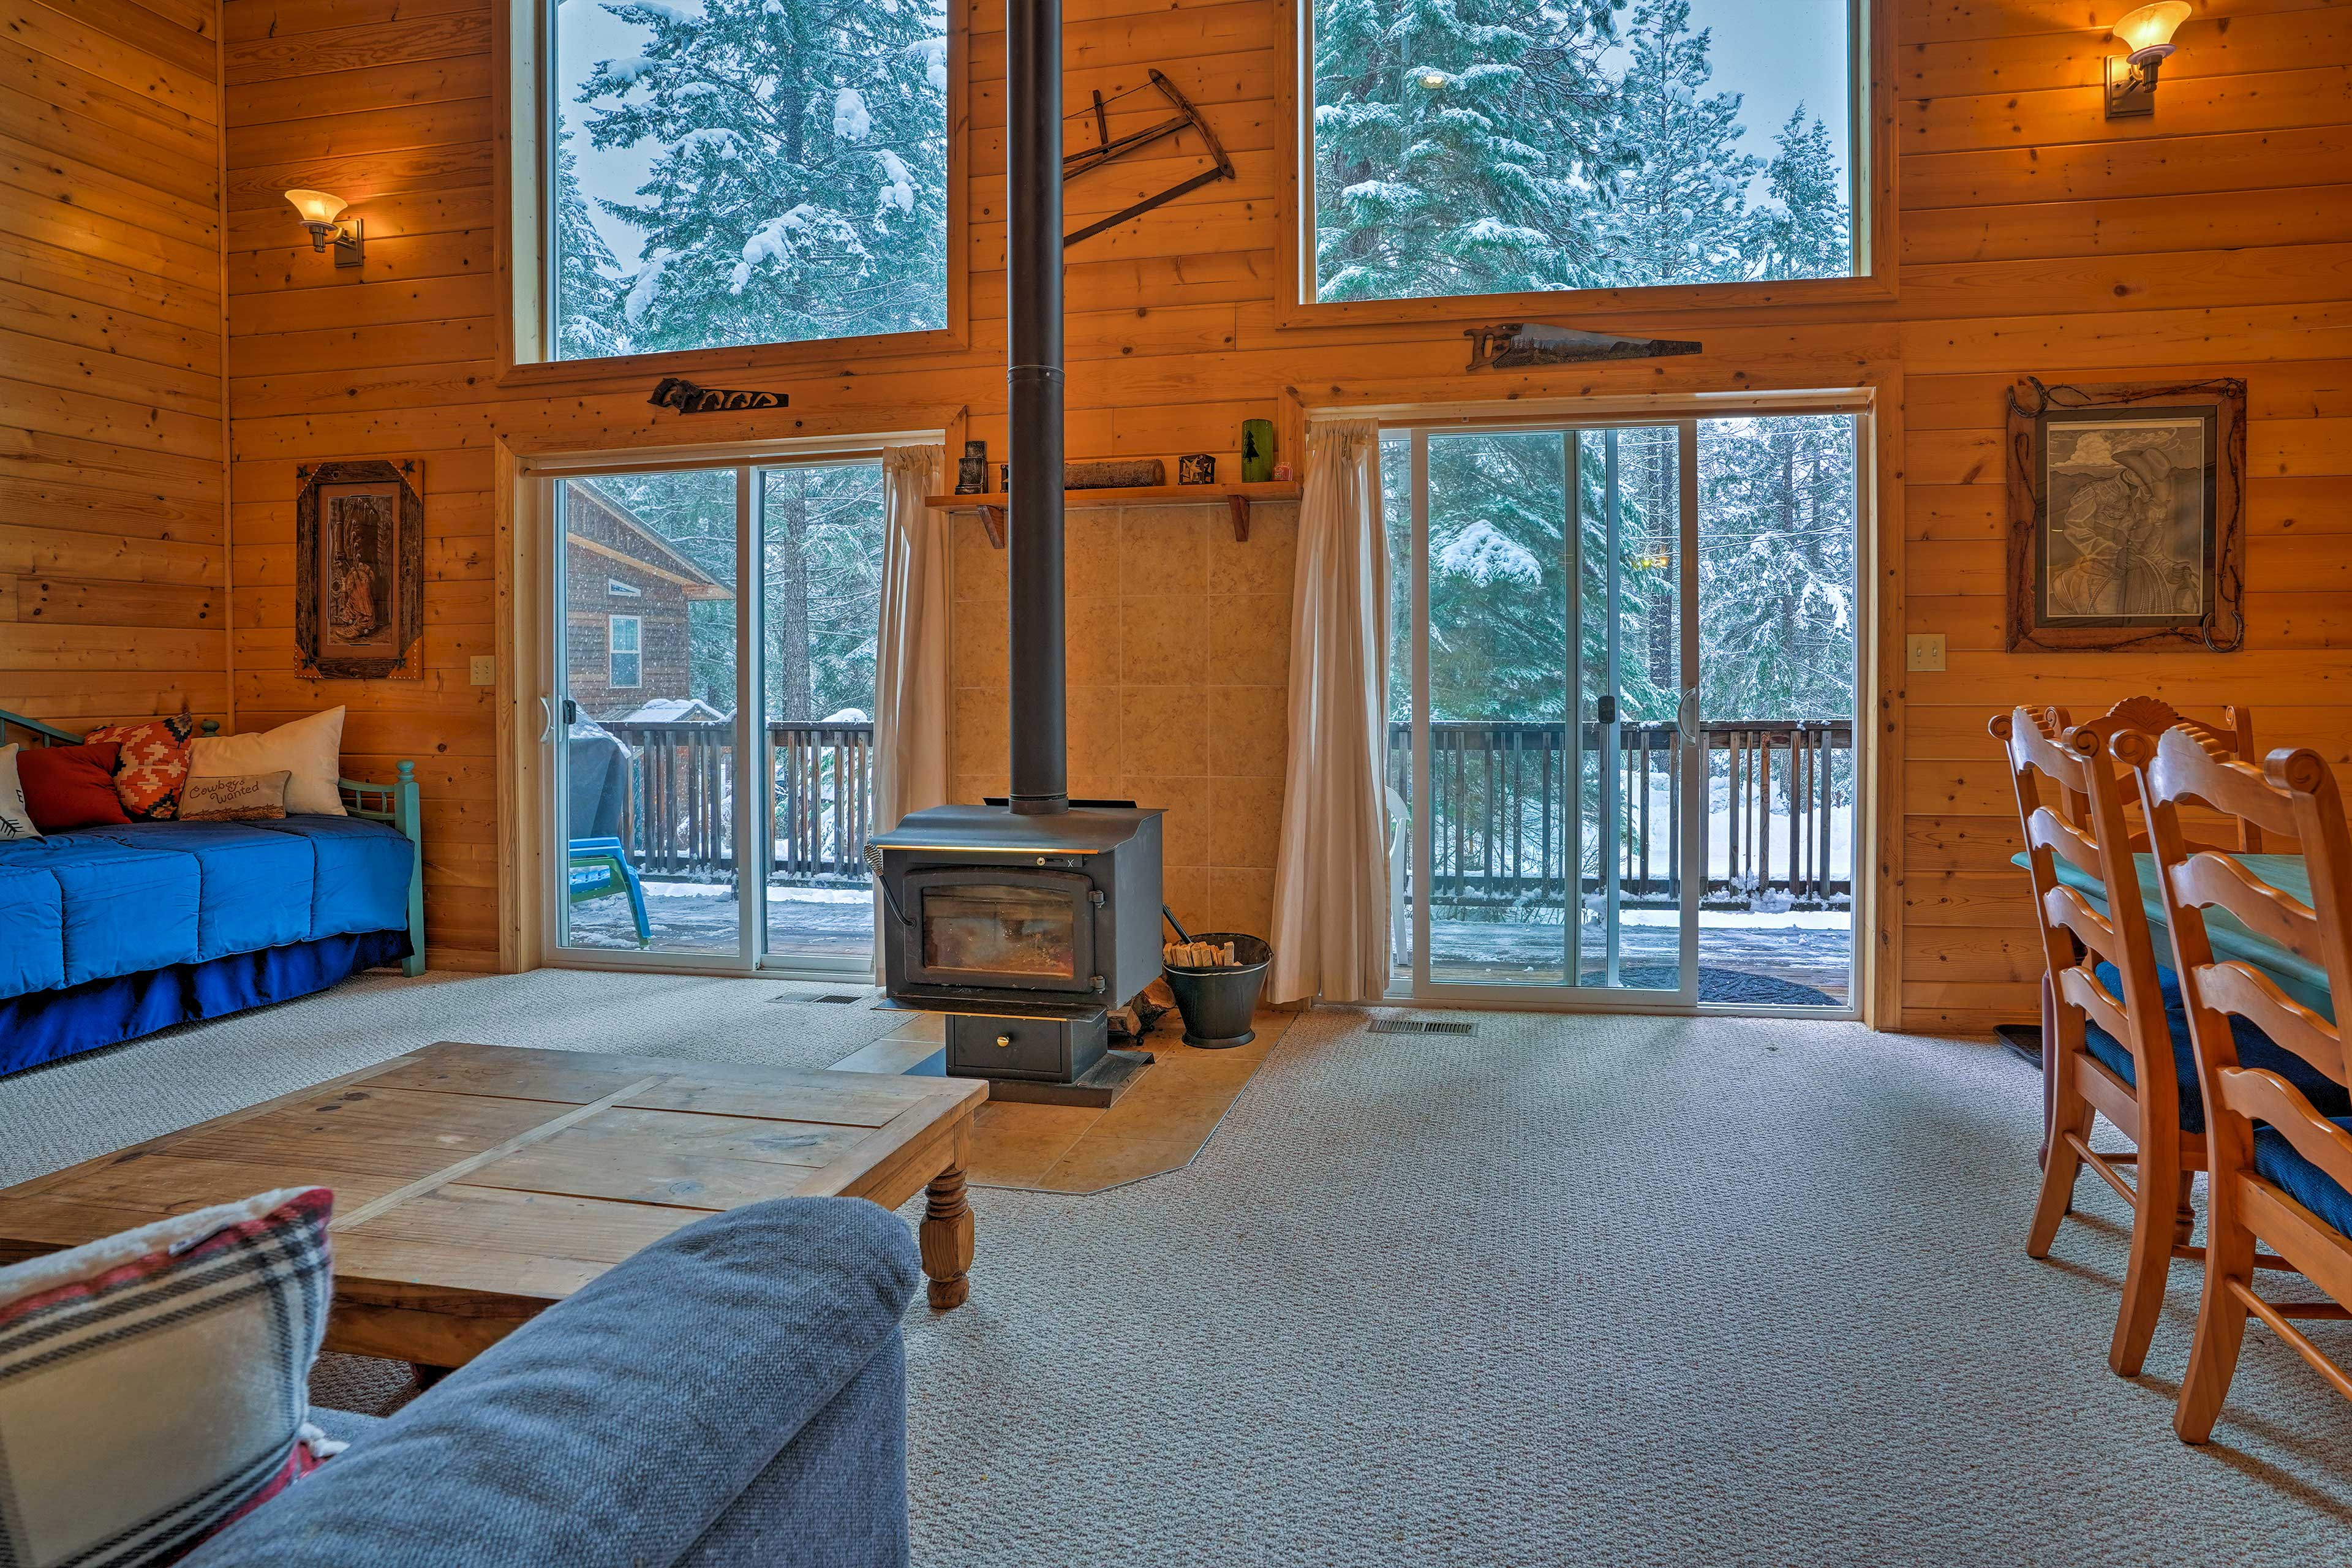 Throw some logs on the wood-burning stove!